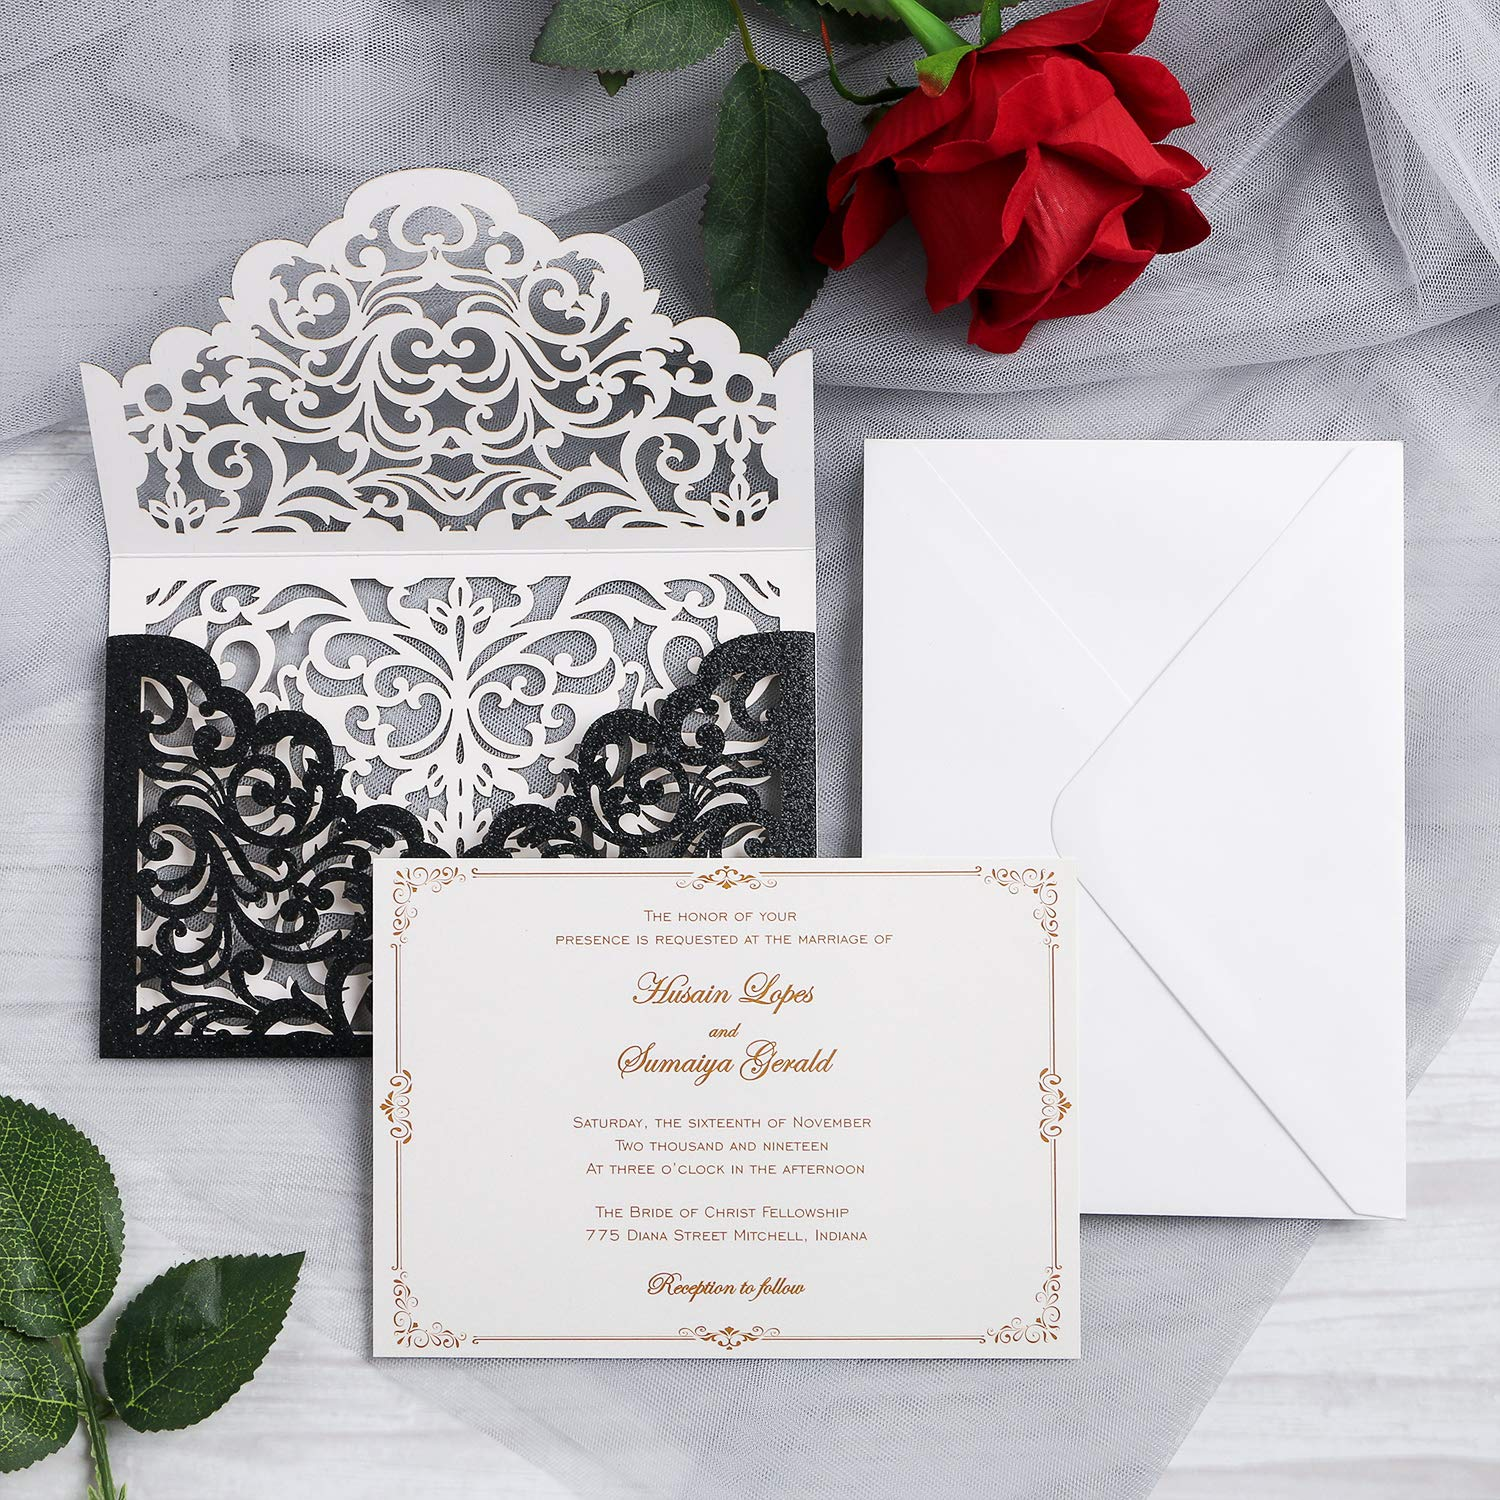 Yimil 20 Pcs Laser Cut Wedding Invitation Cards With Envelopes For Wedding Quinceañera Birthday Engagement Bridal Shower Graduation Party Black